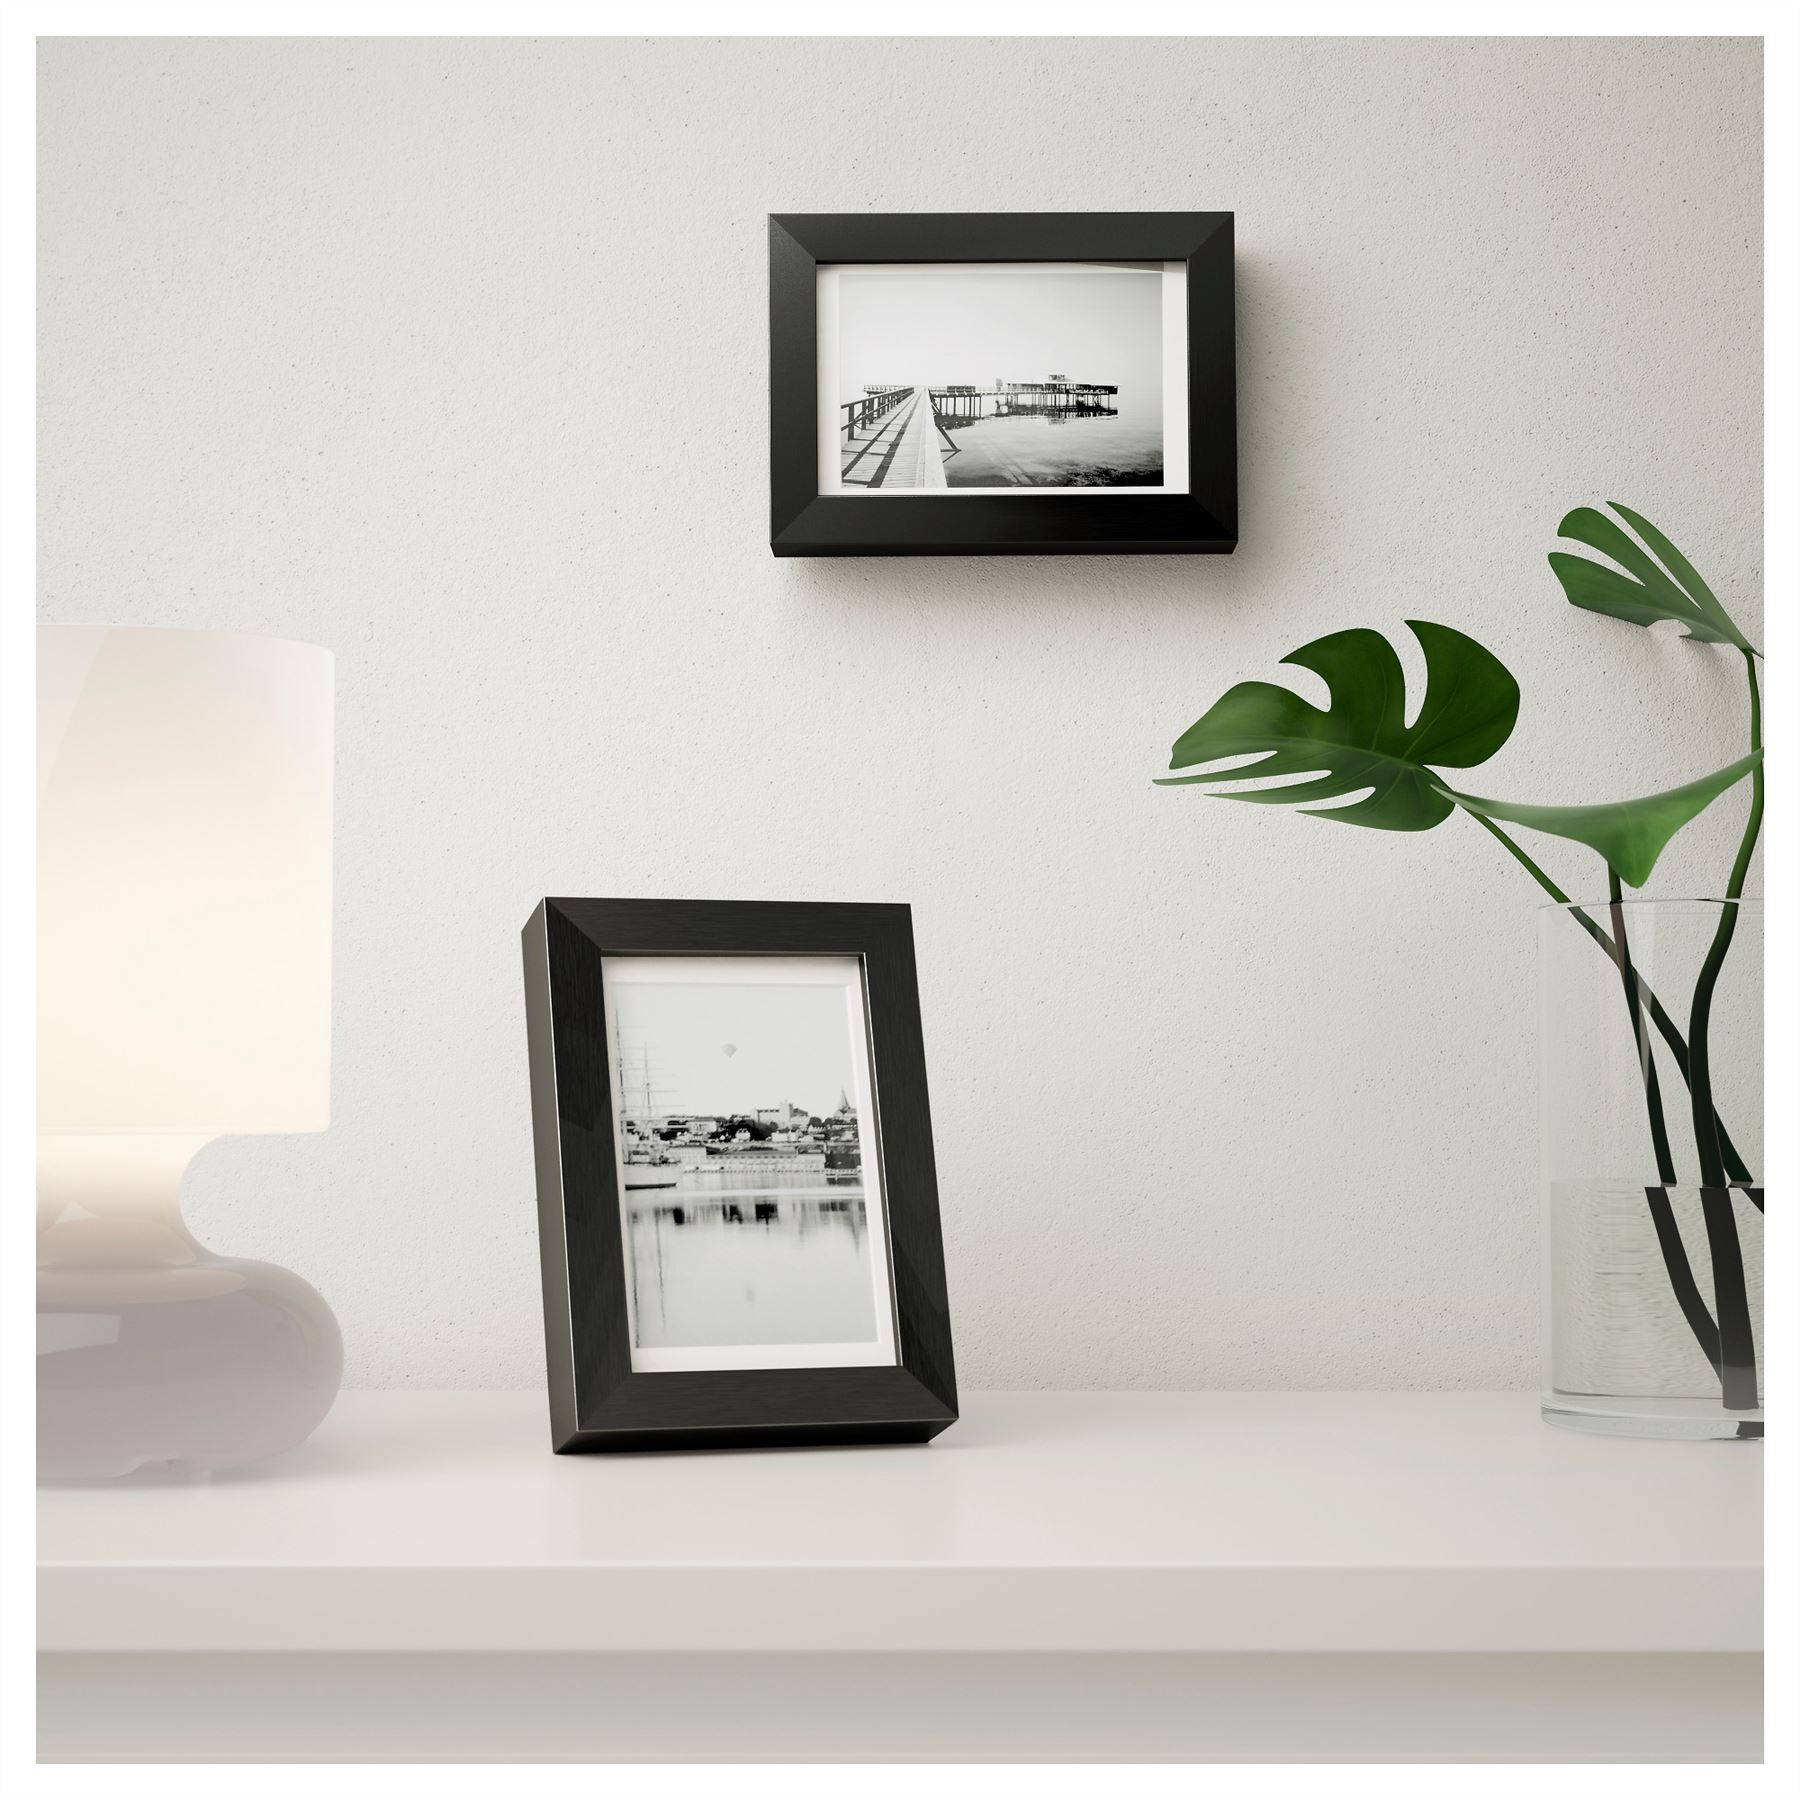 3x Ikea Ribba Picture Photo Frame Black Home Bedroom Living Room ...